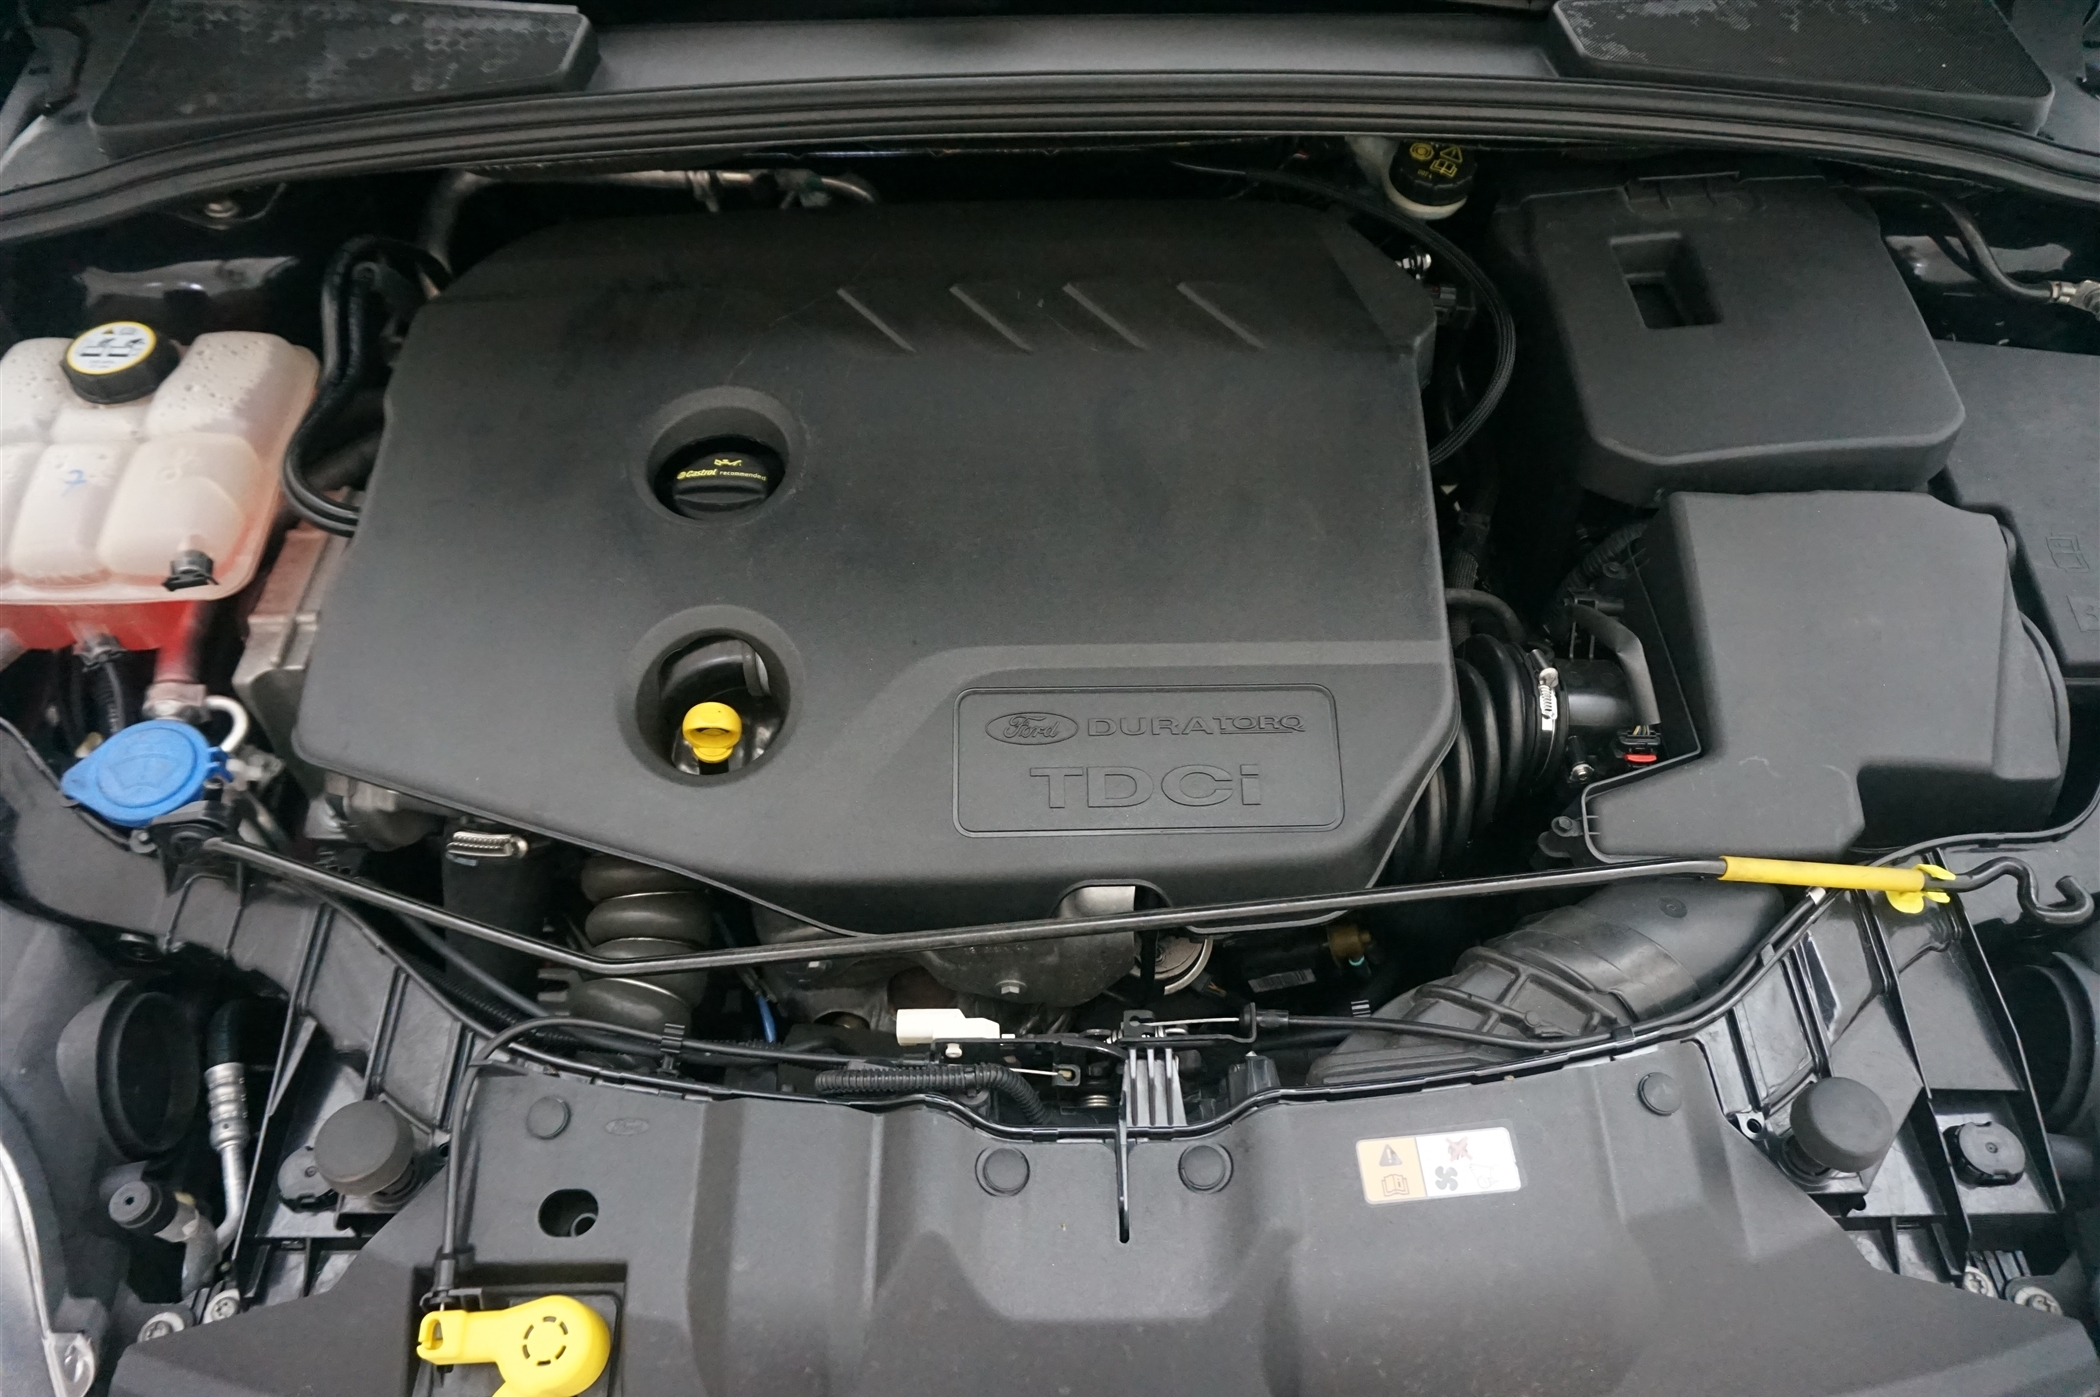 Ford Focus Station 1.6 TDCi Trend (115cv) (5p) (2011 a 2014)